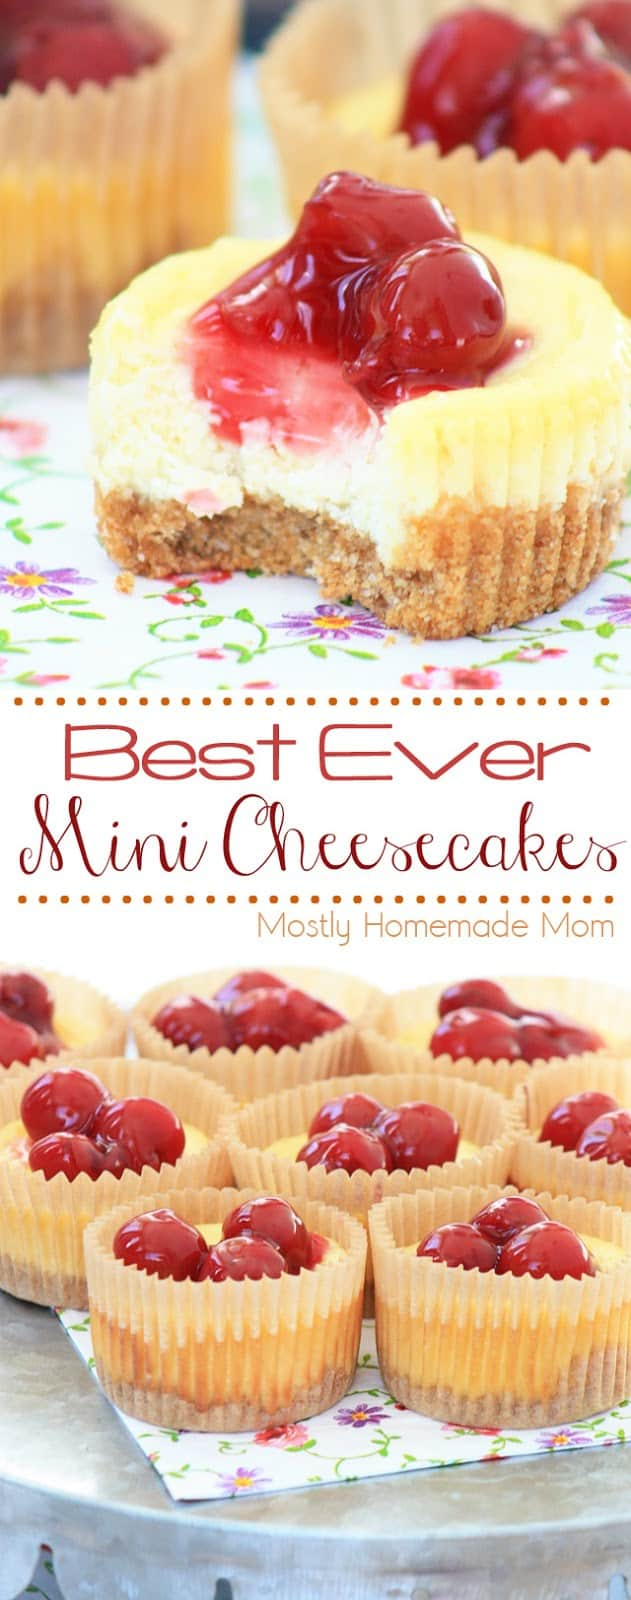 THE BEST recipe ever for Mini Cheesecakes! Cheesecake filling with graham cracker crust made in cupcake tins. My kids beg me to make these again and again! #minicheesecakes #cheesecake #recipe #dessert